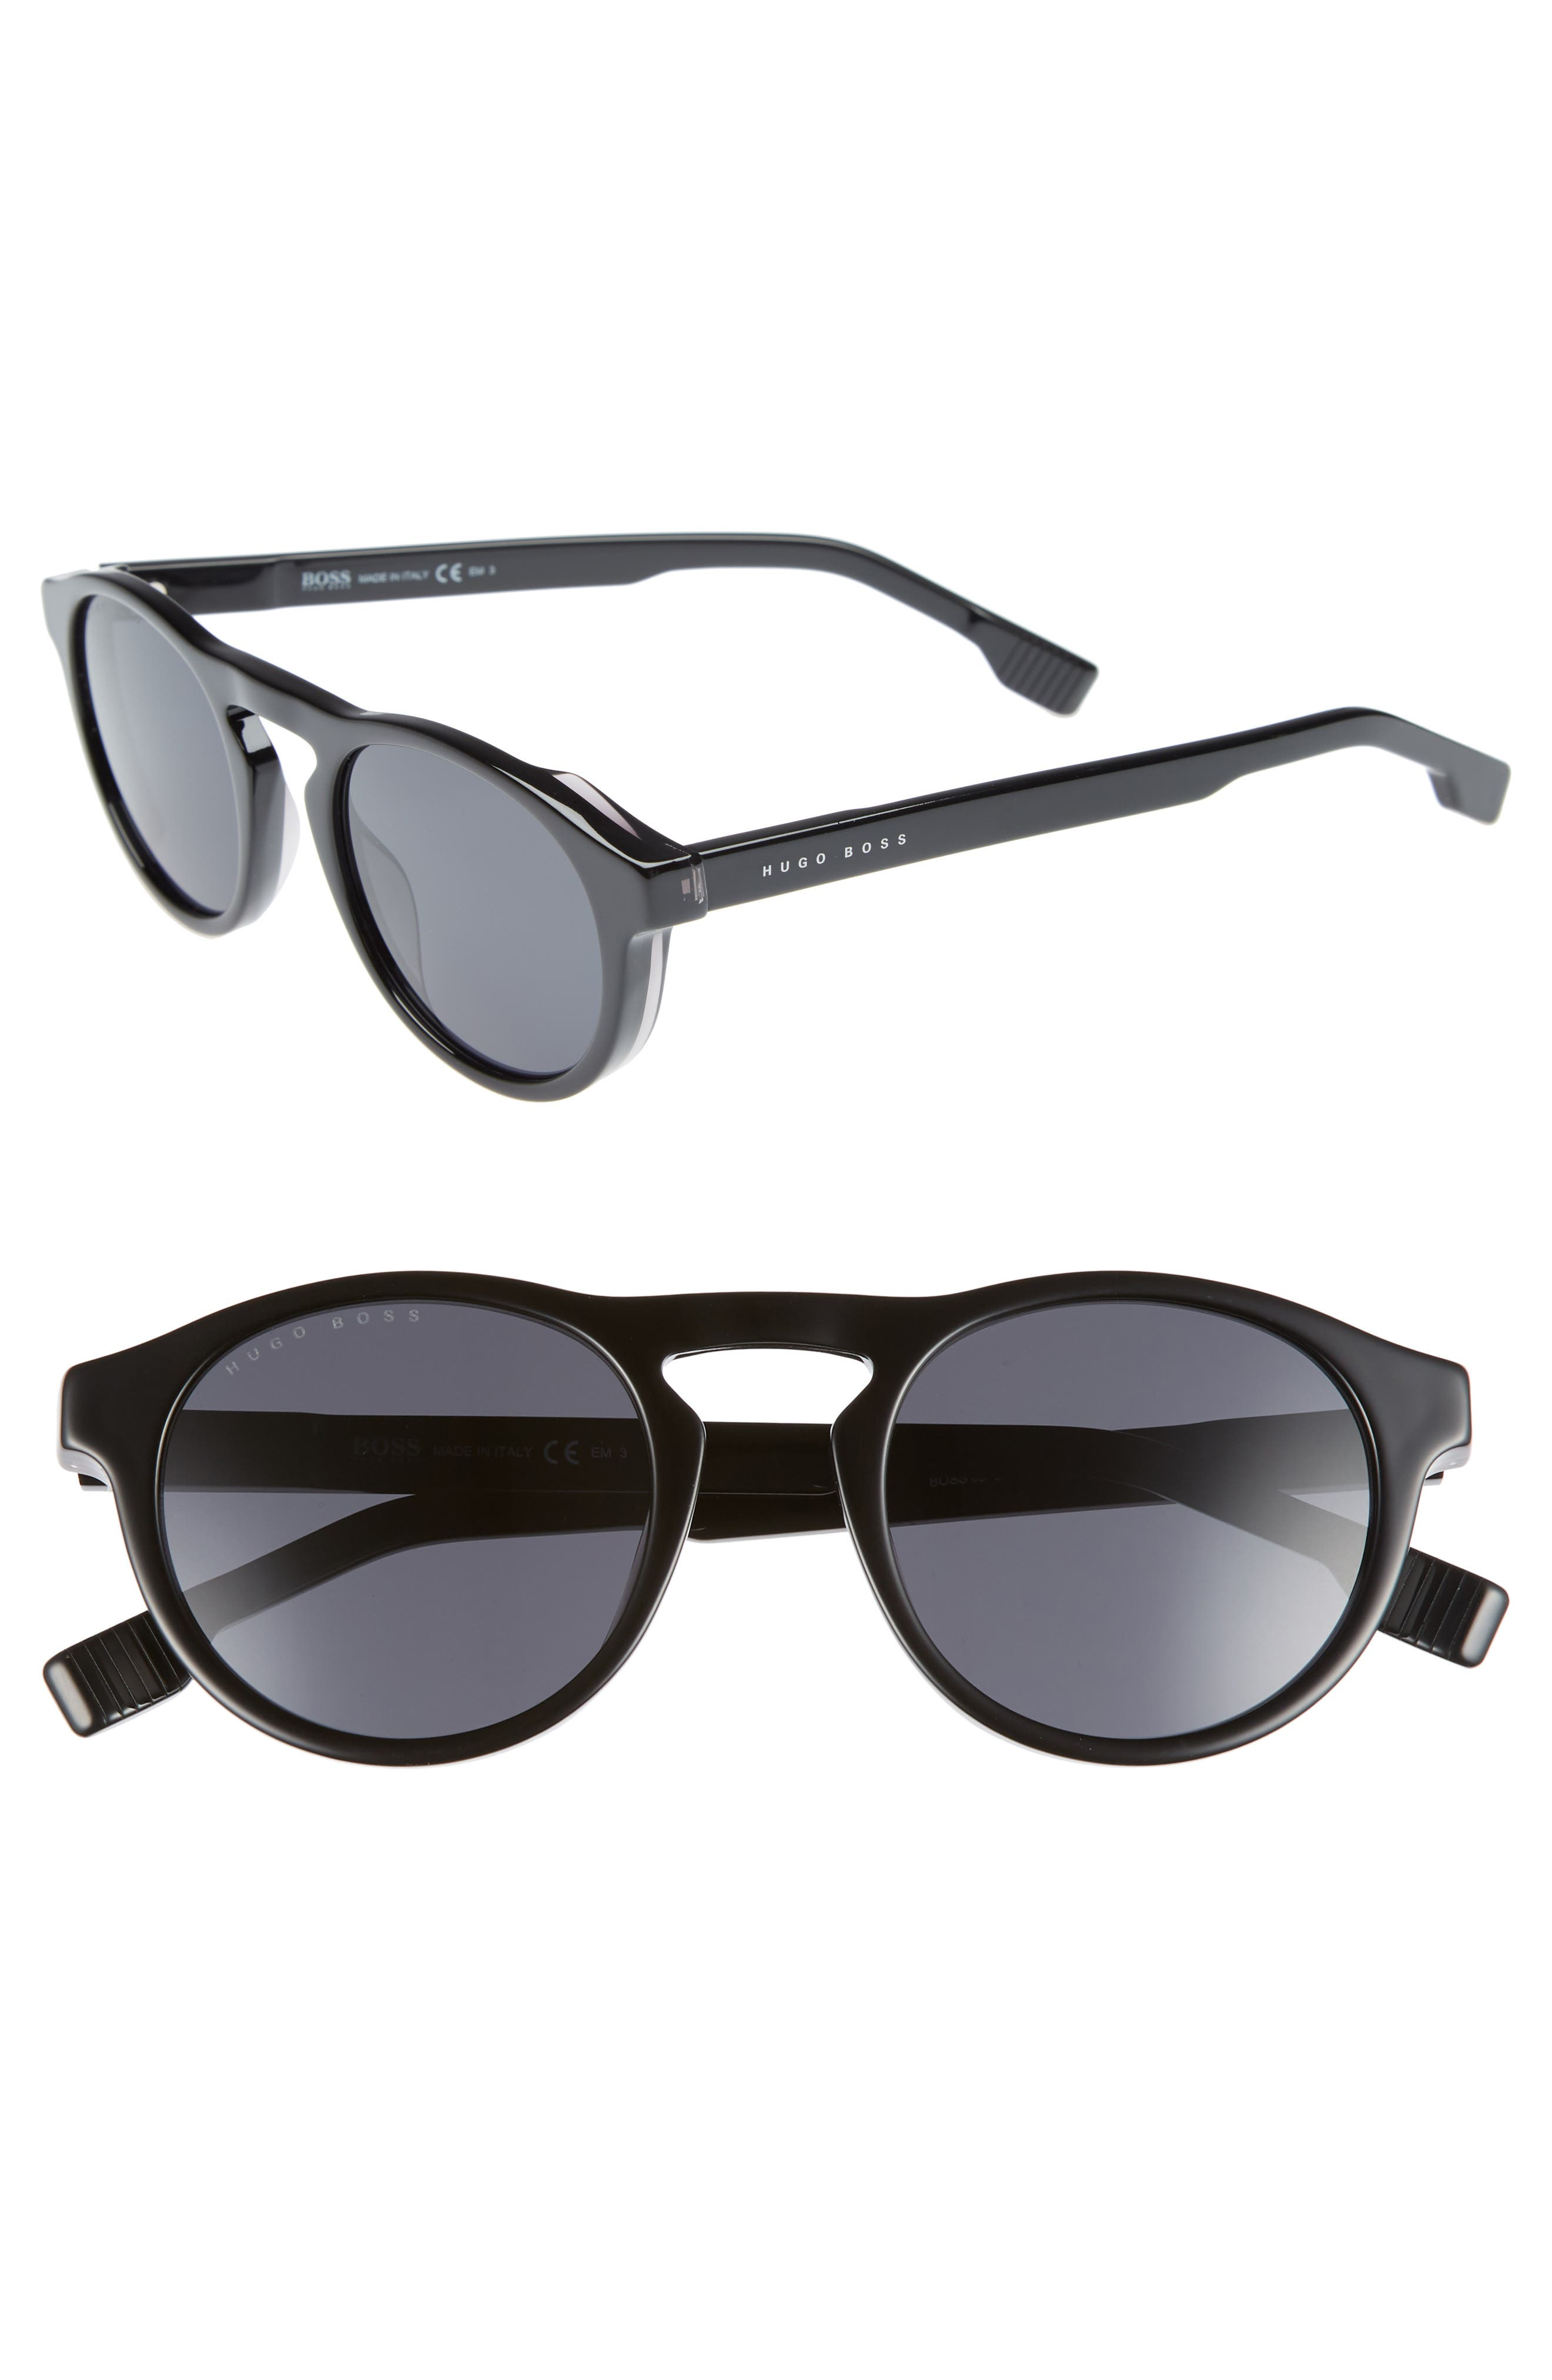 50mm Polarized Round Sunglasses,                         Main,                         color, Black/ Grey